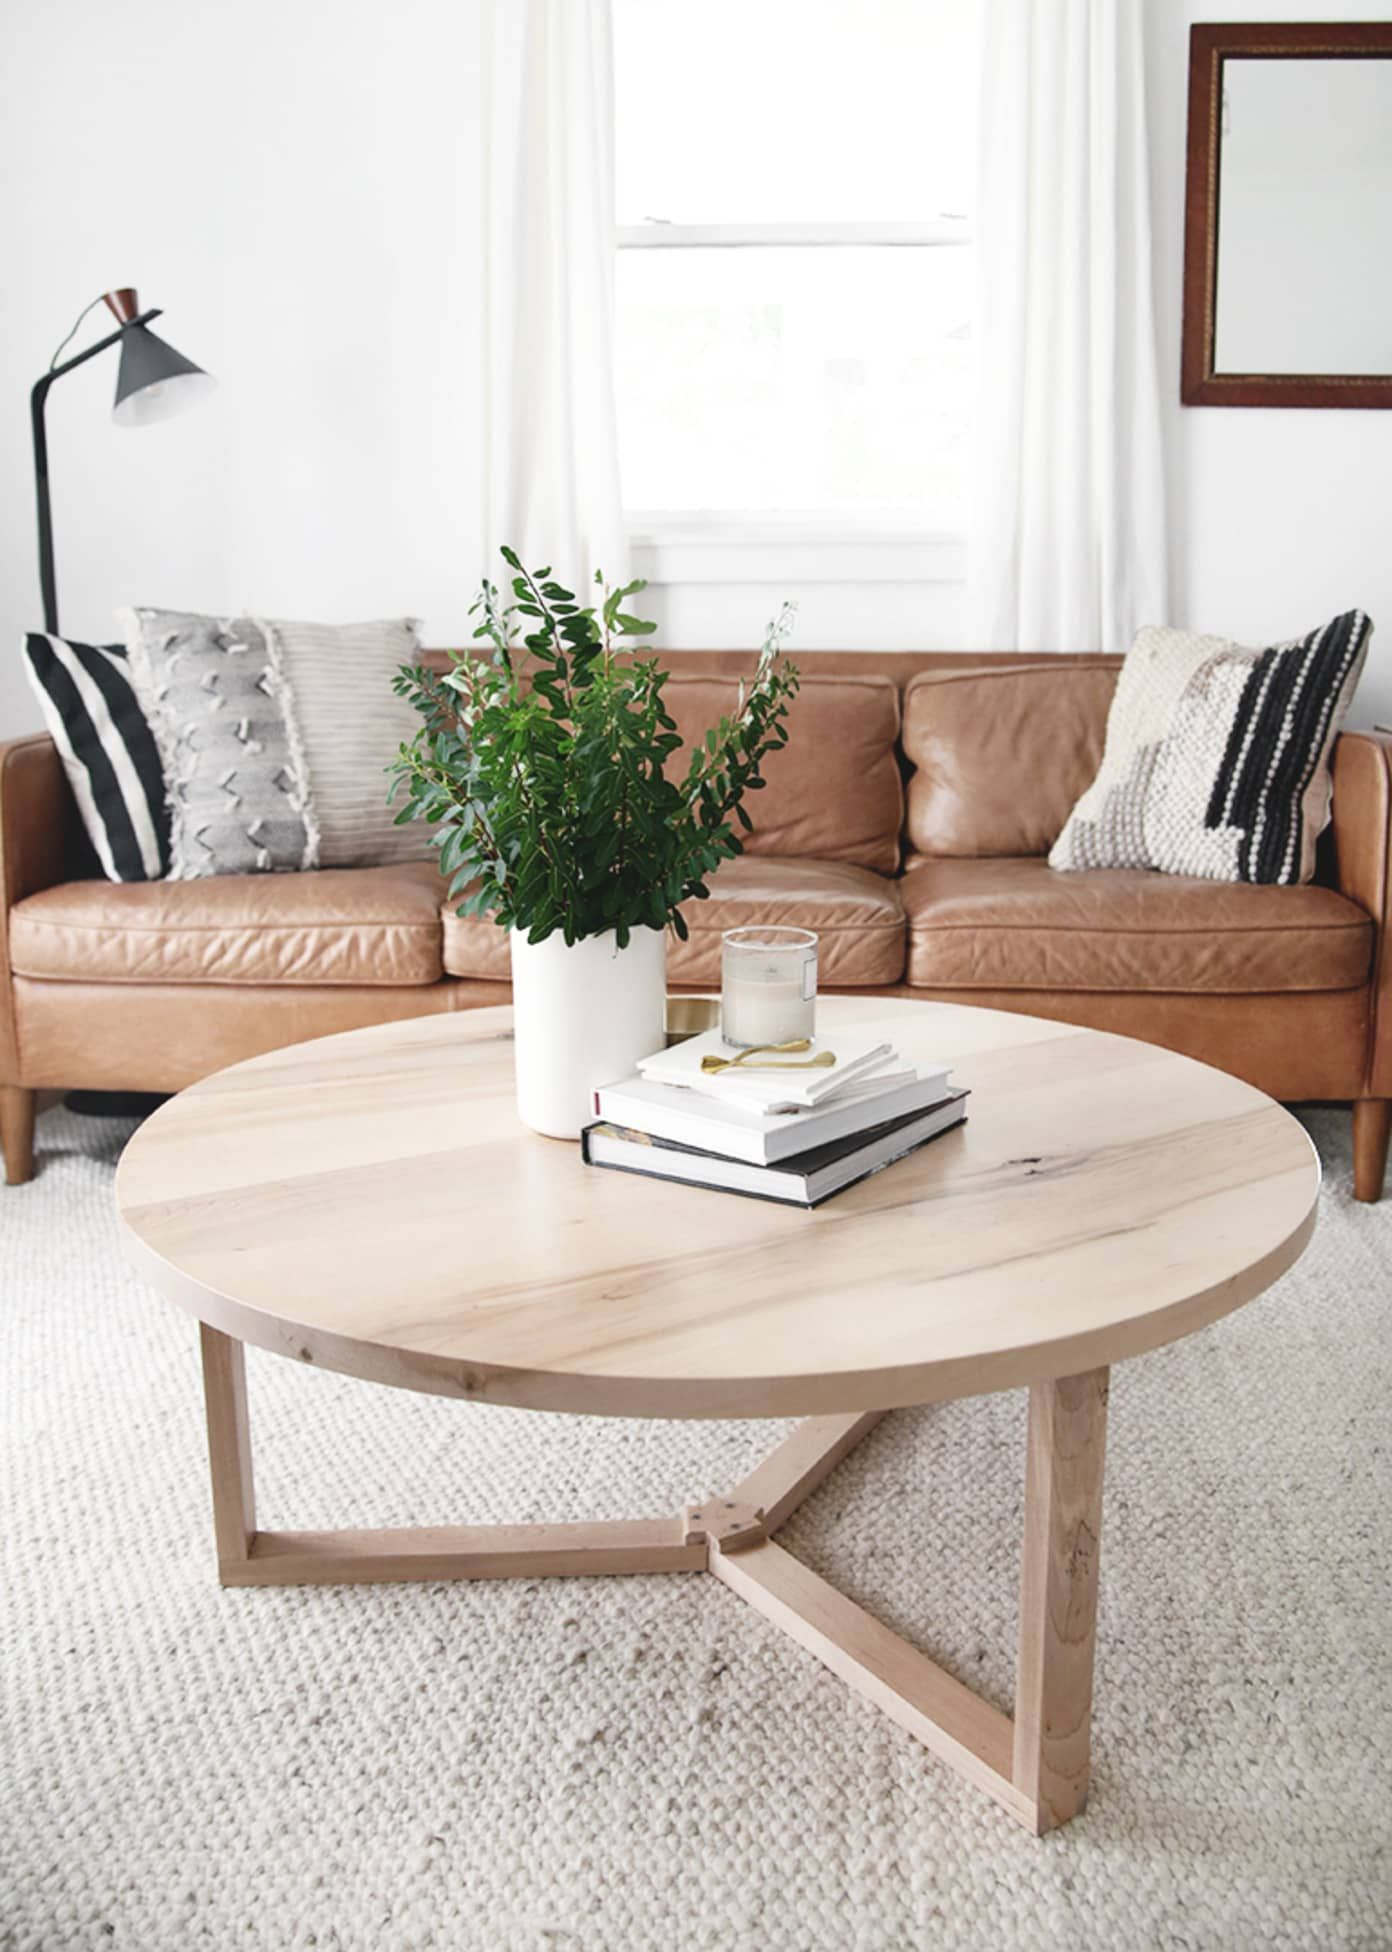 14 Diy Coffee Tables You Can Make No Matter Your Skill Level In 2020 Round Coffee Table Living Room Round Coffee Table Modern Round Coffee Table Diy